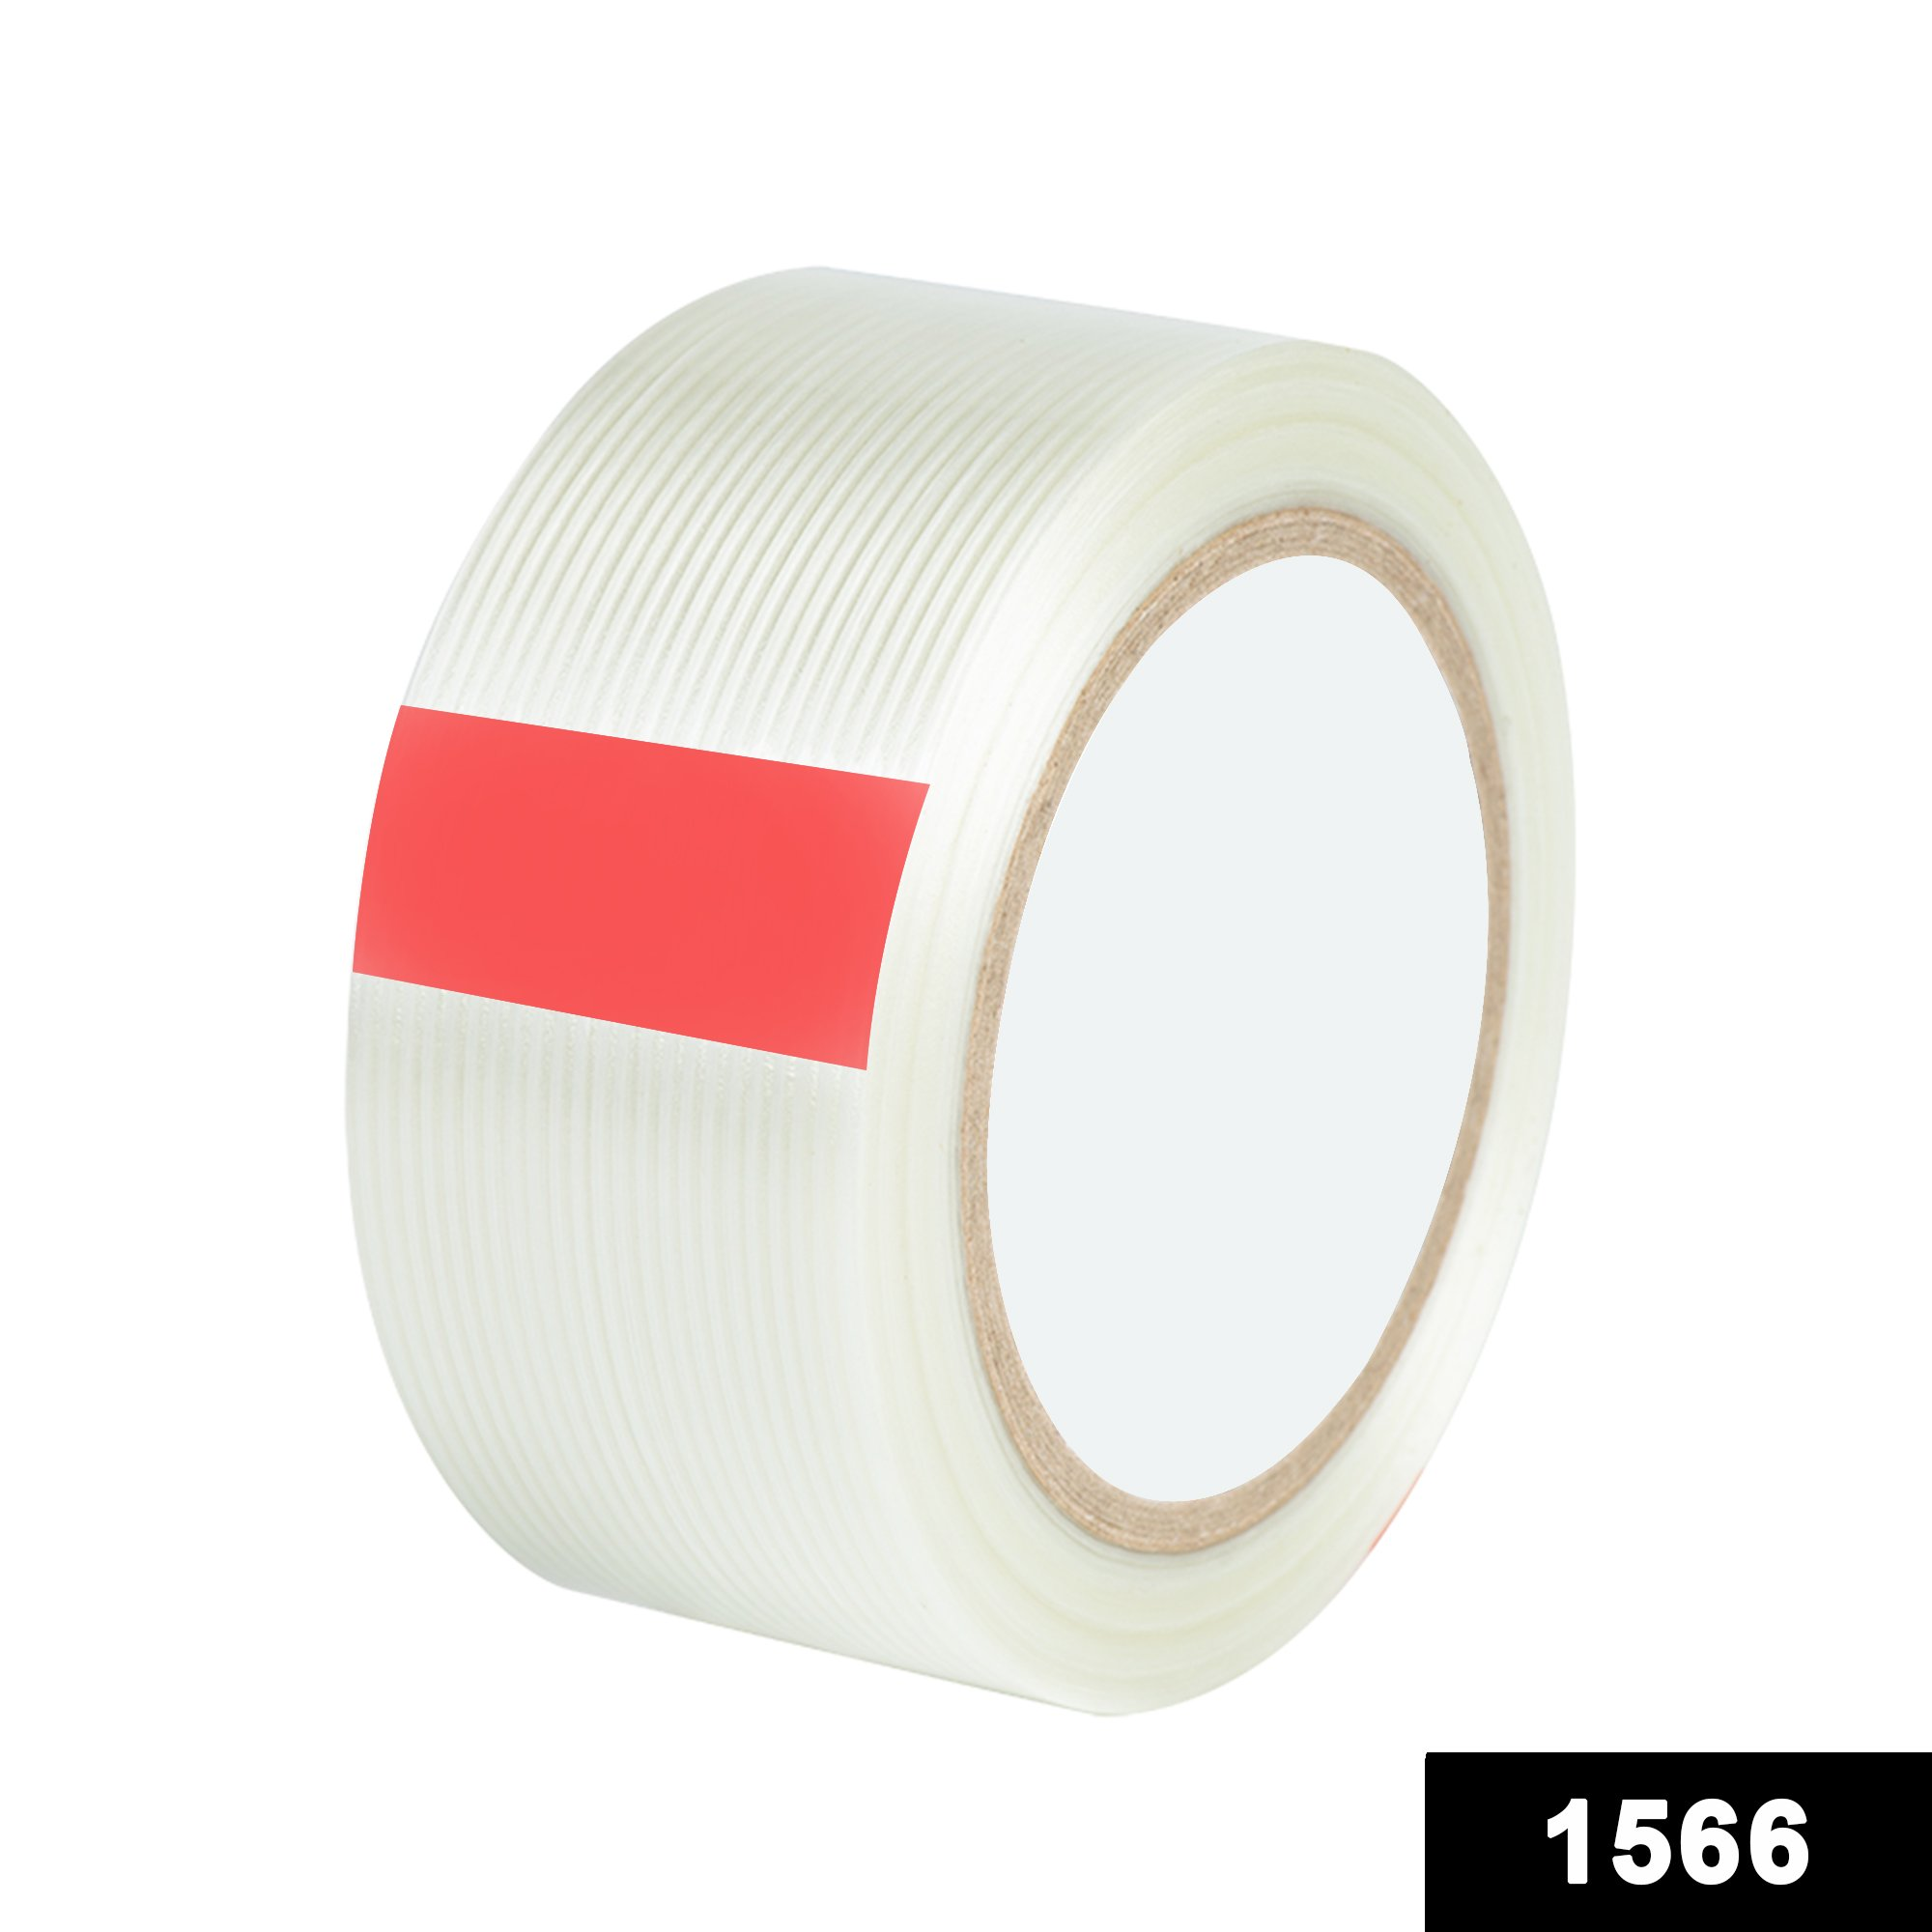 1566 Transparent Strong Tape Rolls for Multipurpose Packing Use -